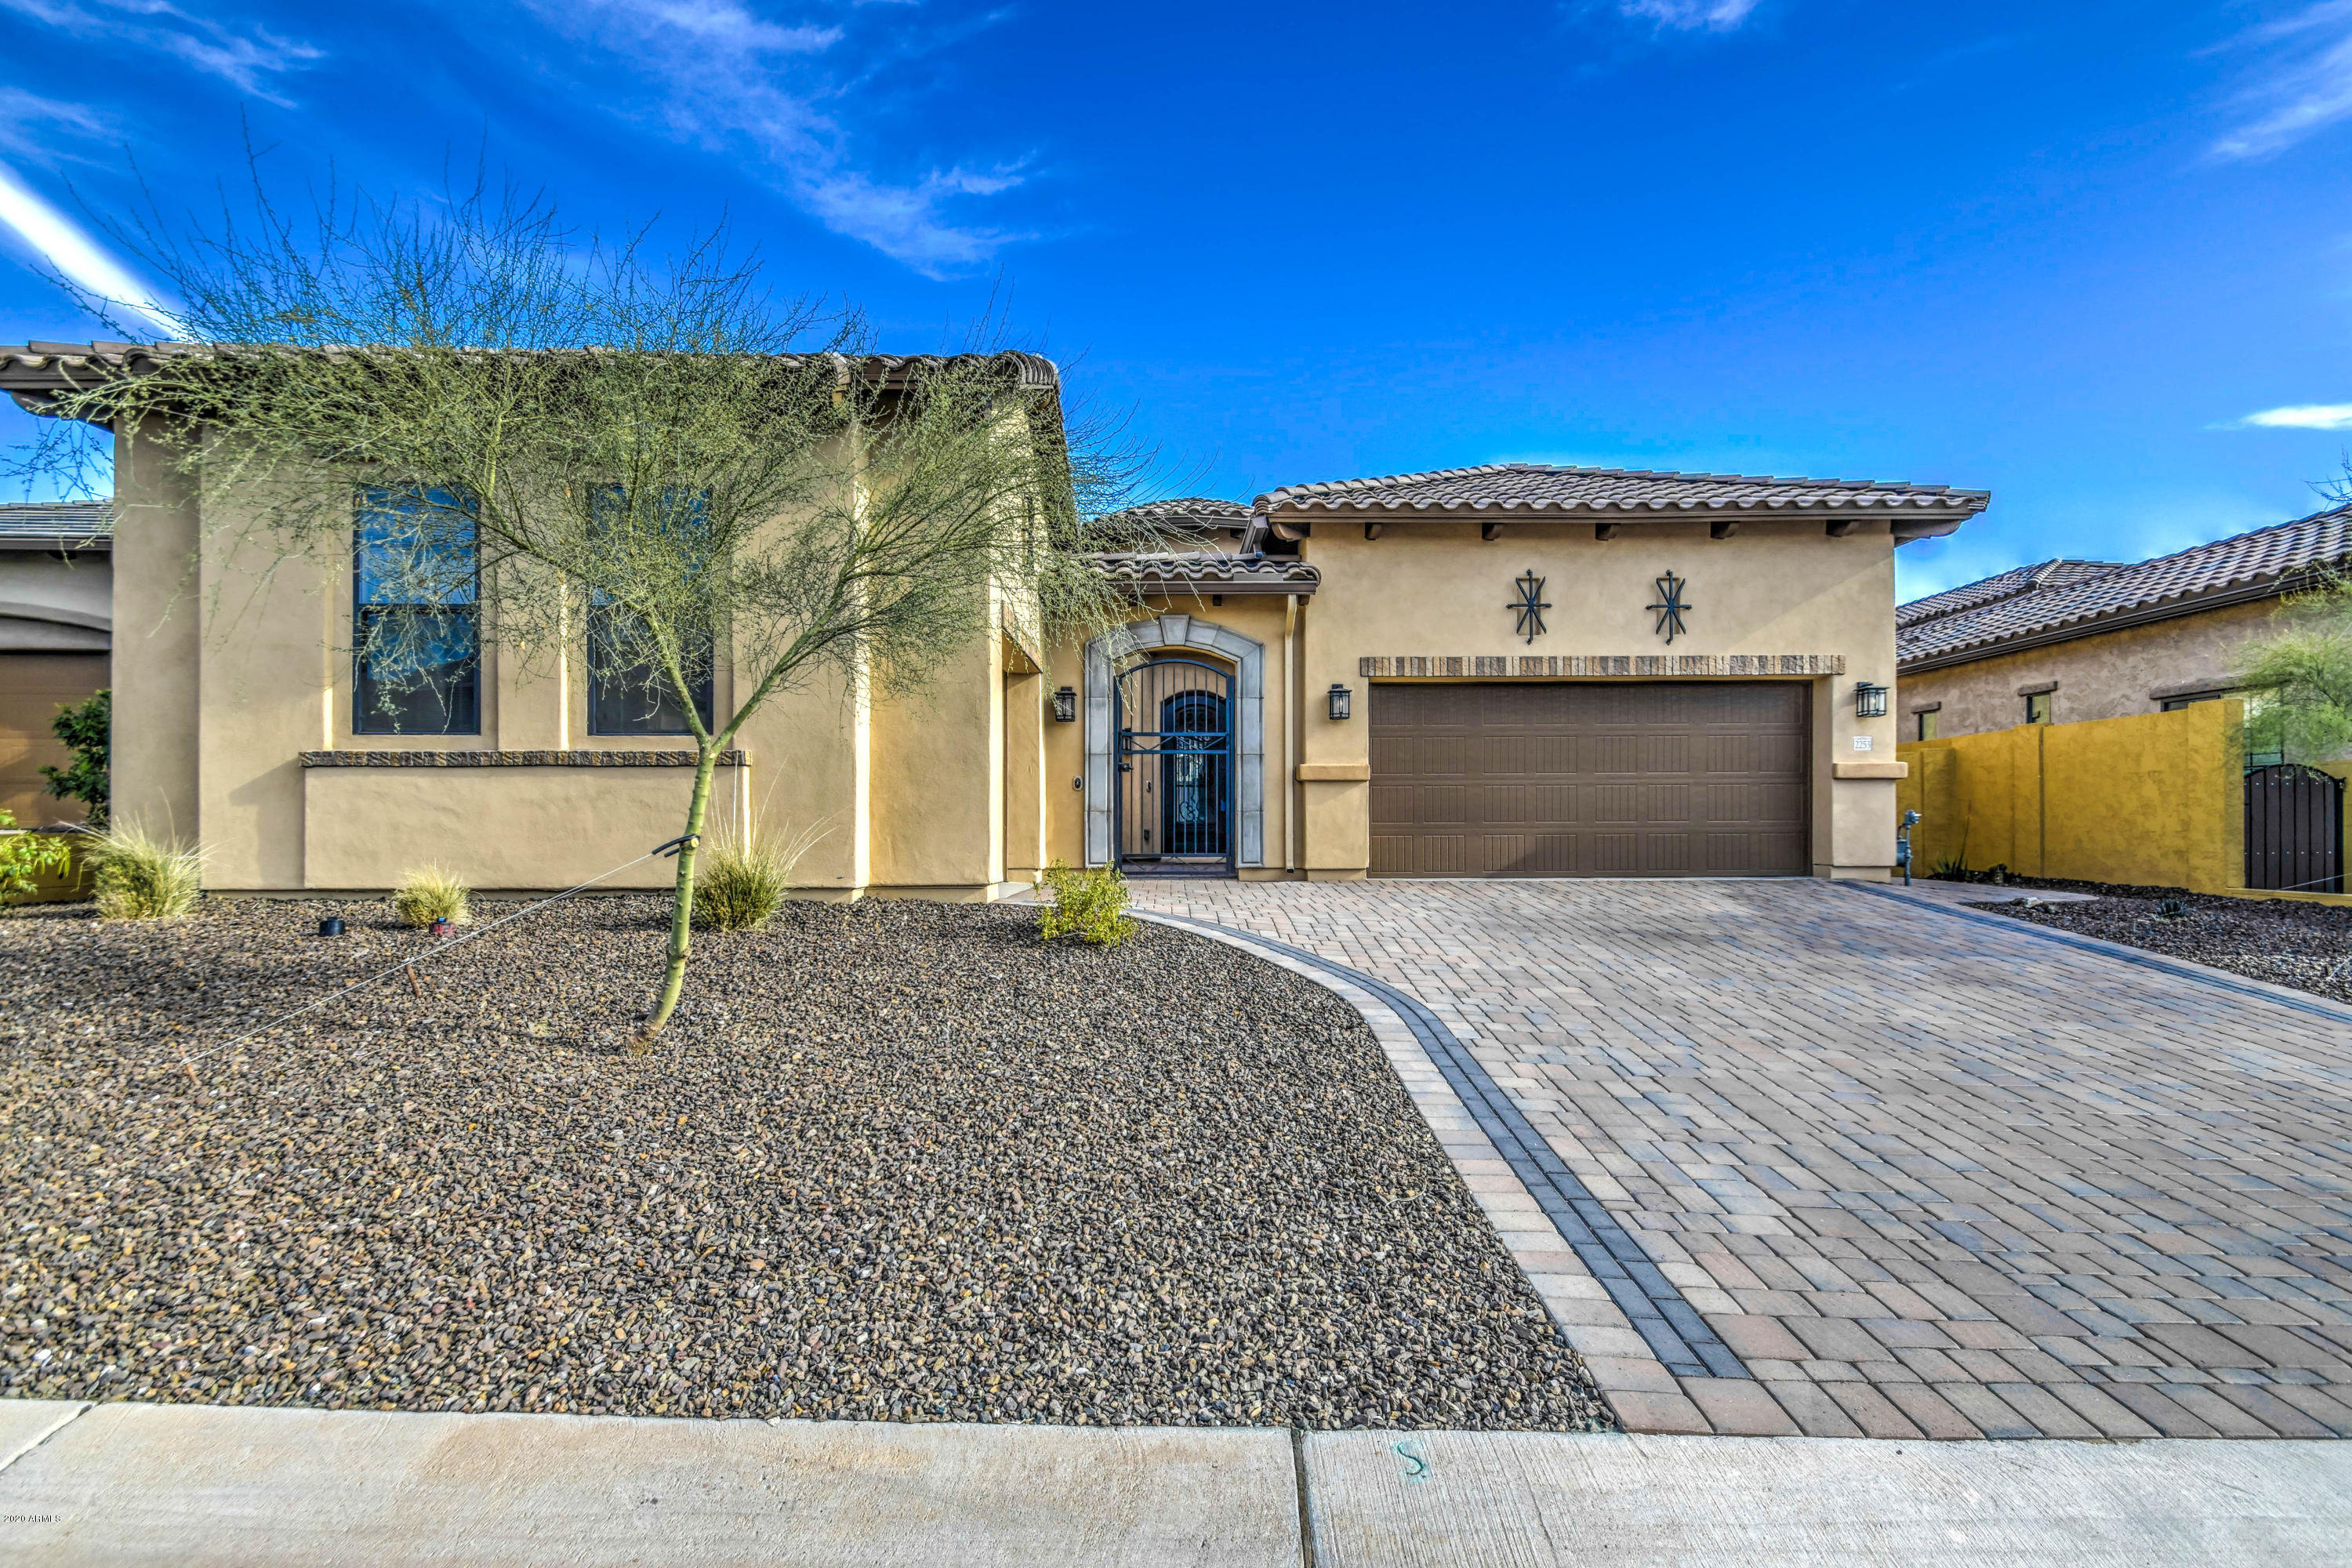 Photo of 2253 N TROWBRIDGE Street, Mesa, AZ 85207